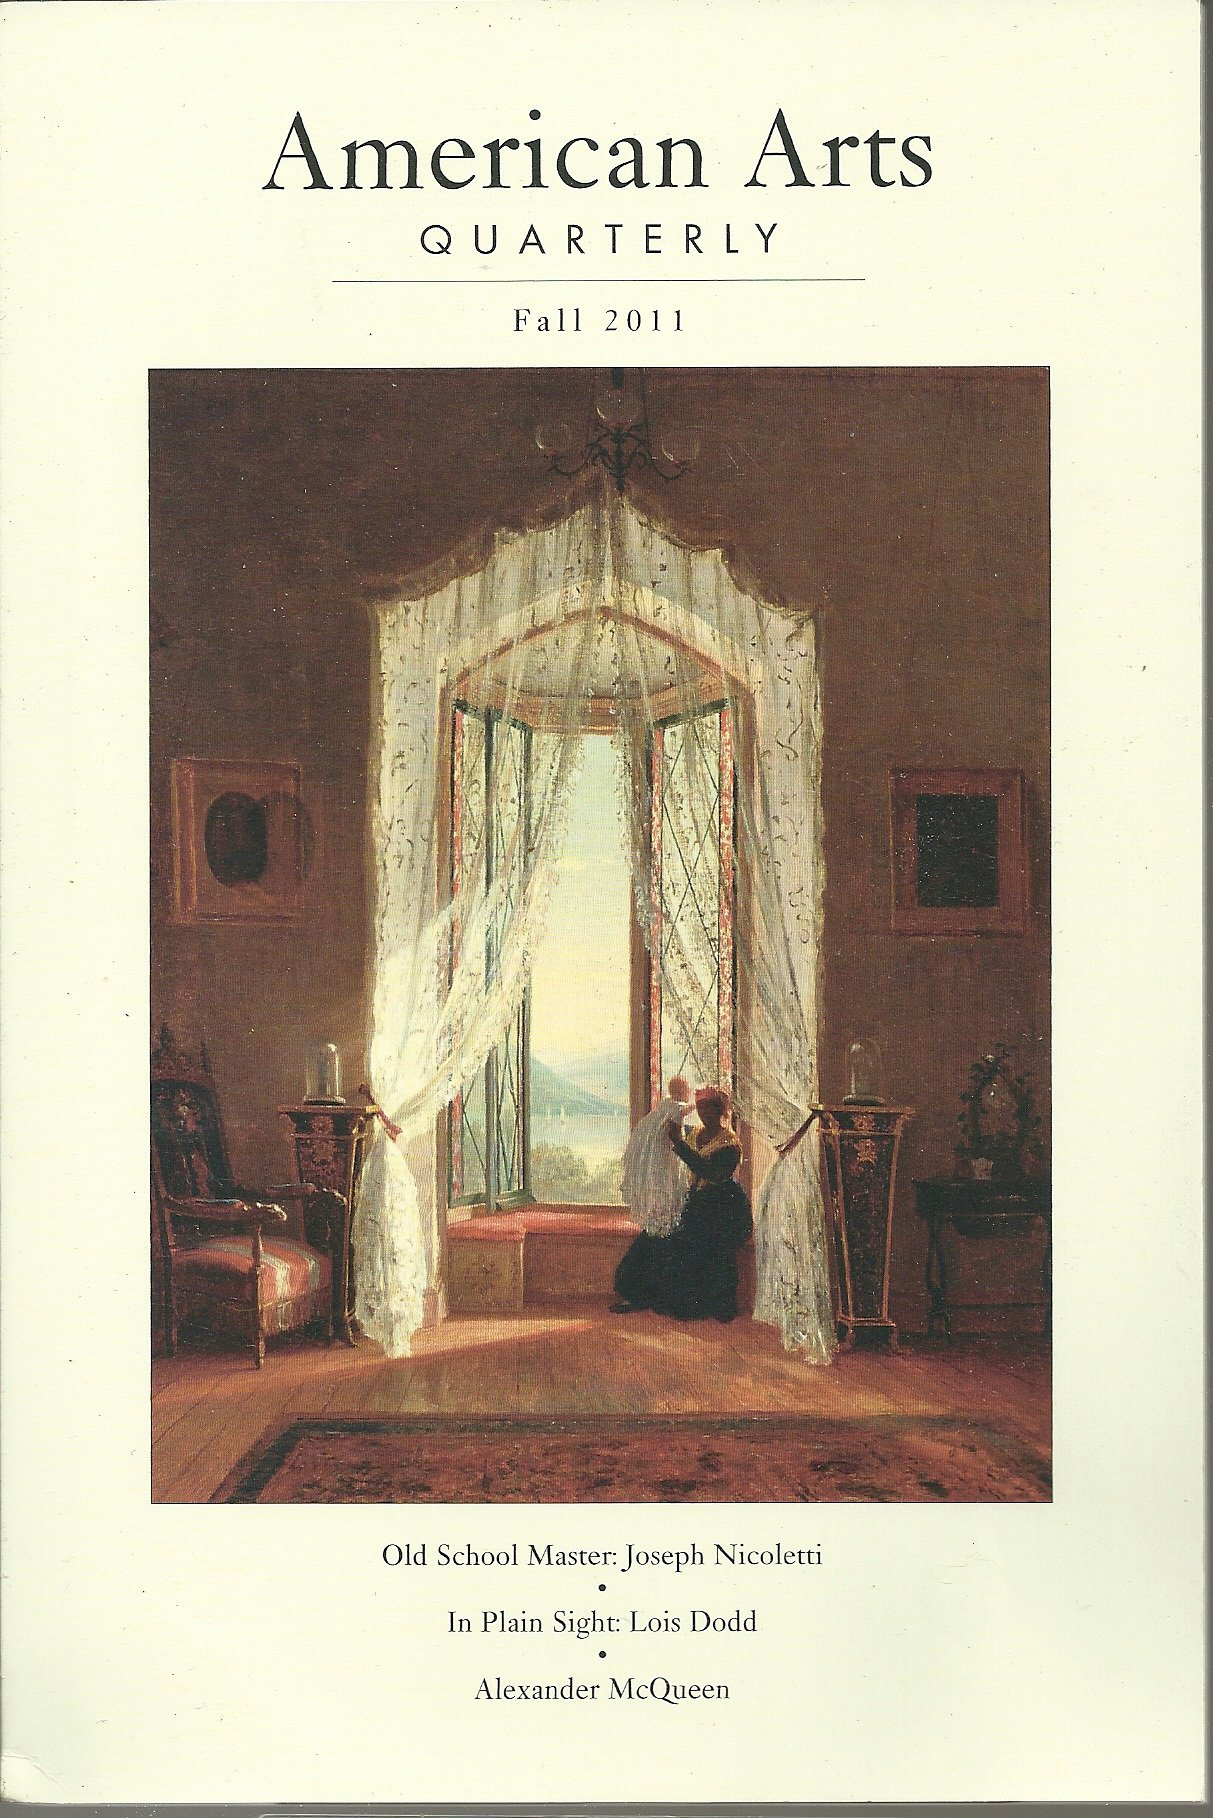 American Arts Quarterly, Fall 2011, Volume 28, Number 4, Cooper, James F. (editor)